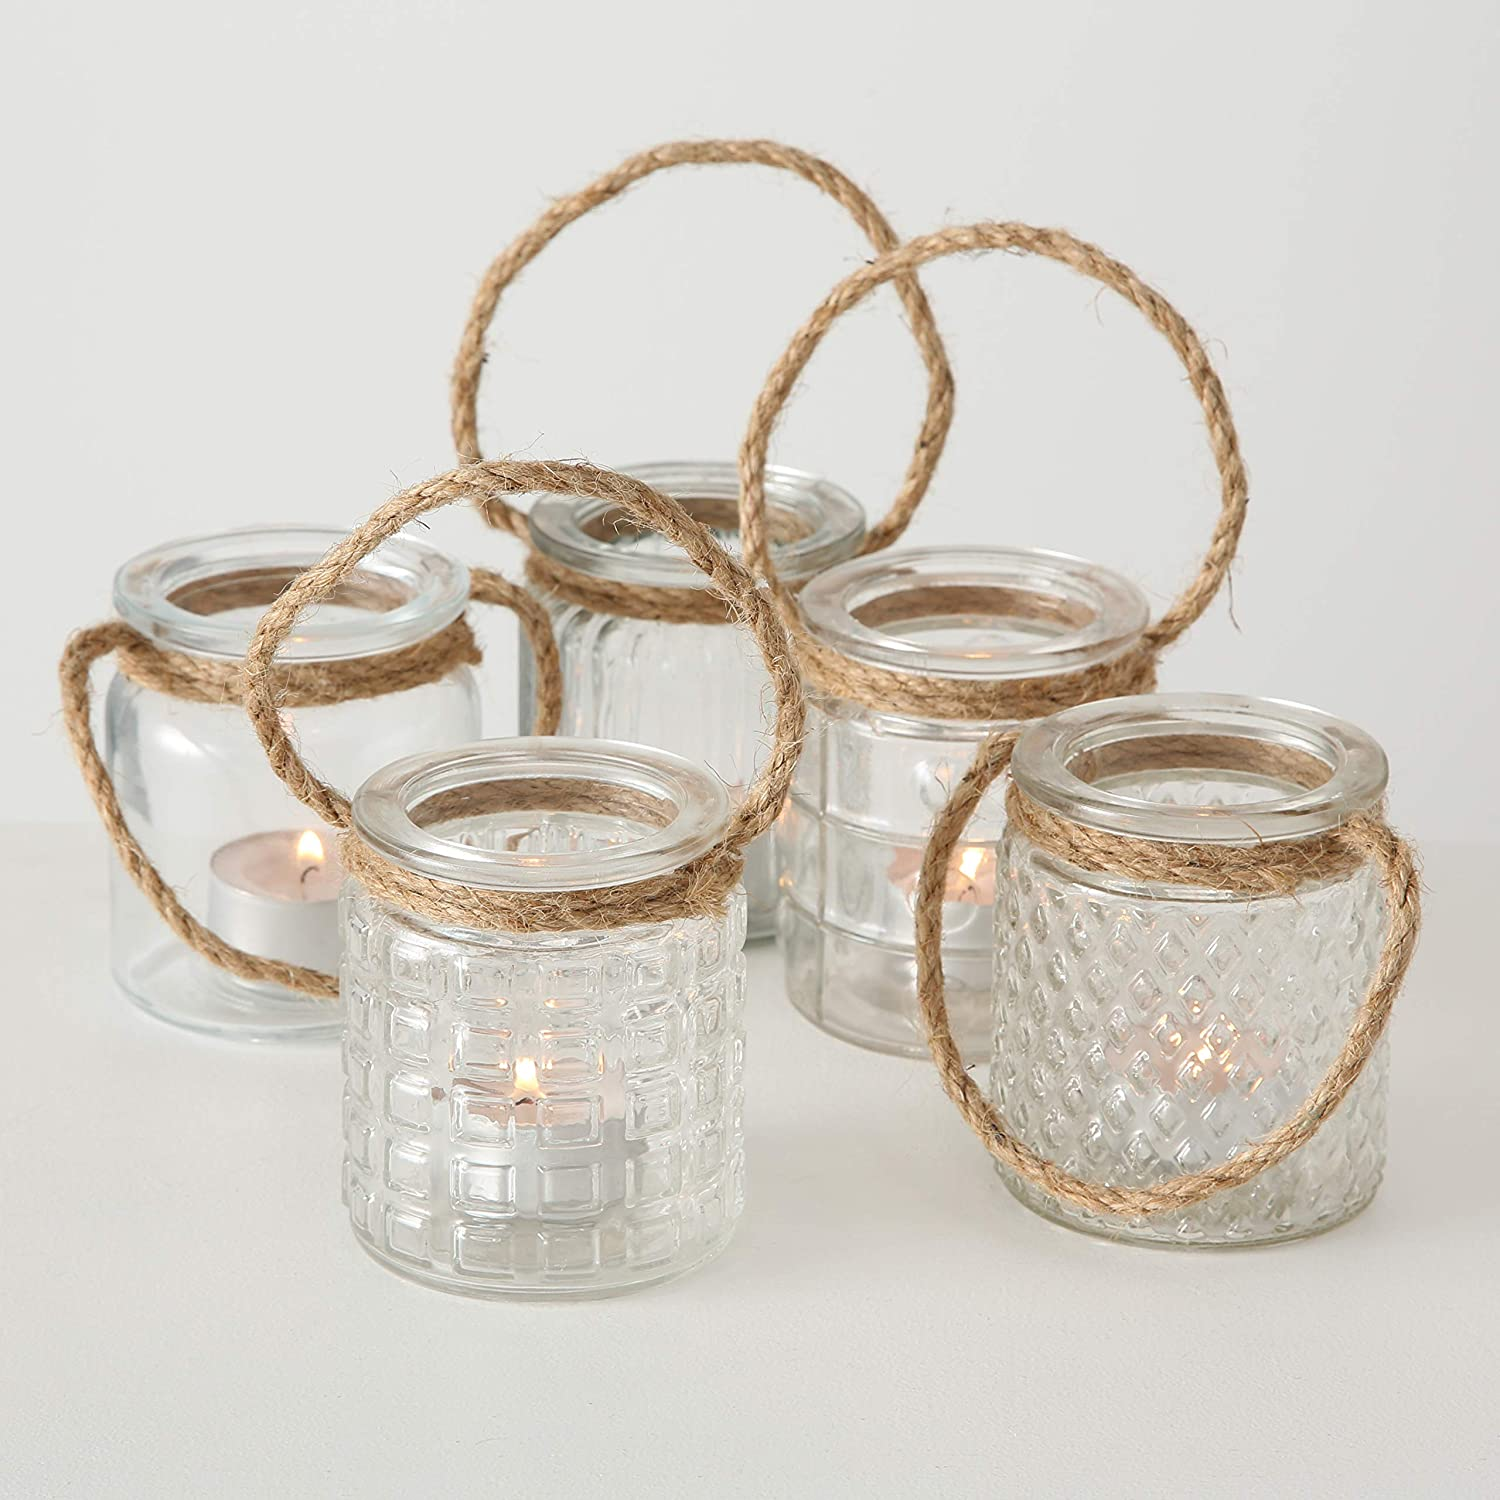 Set of 5 for LED or Wax Votive Wind Light 2 3//4 x 2 3//4 x 3 1//2 Inches Clear Glass Candle Holder Whole House Worlds Beach Chic Nautical Rope Hurricane Lamps Pillar or Tealights